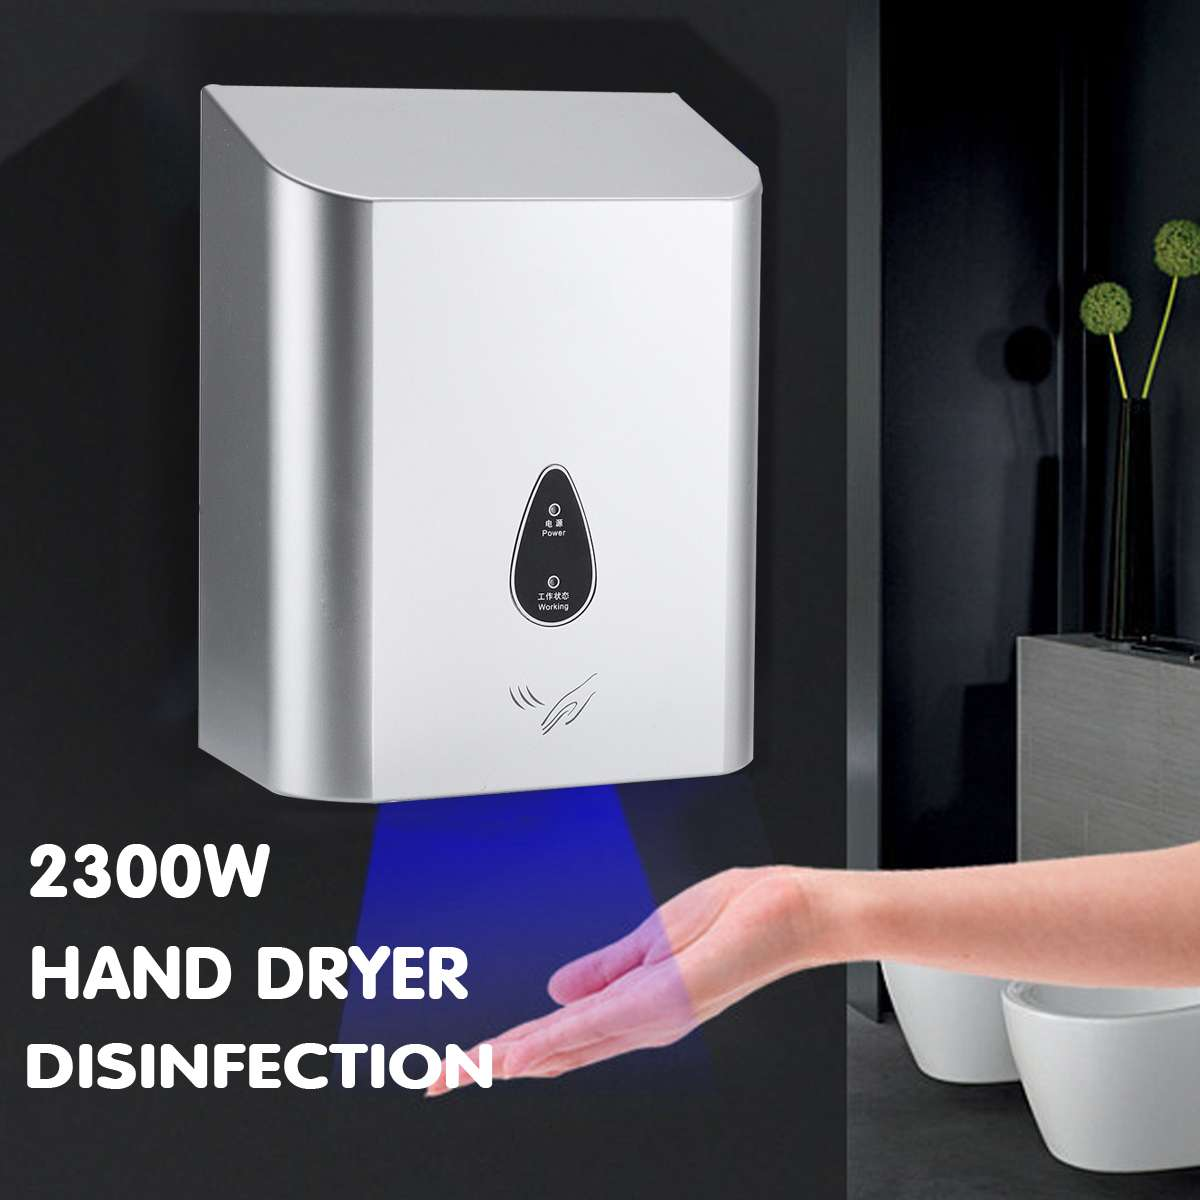 2500W 220V High Speed Electric Hand Dryer Full Automatic Induction  Hand-drying Device Bathroom Hot Air Wind Blower2500W 220V High Speed Electric Hand Dryer Full Automatic Induction  Hand-drying Device Bathroom Hot Air Wind Blower